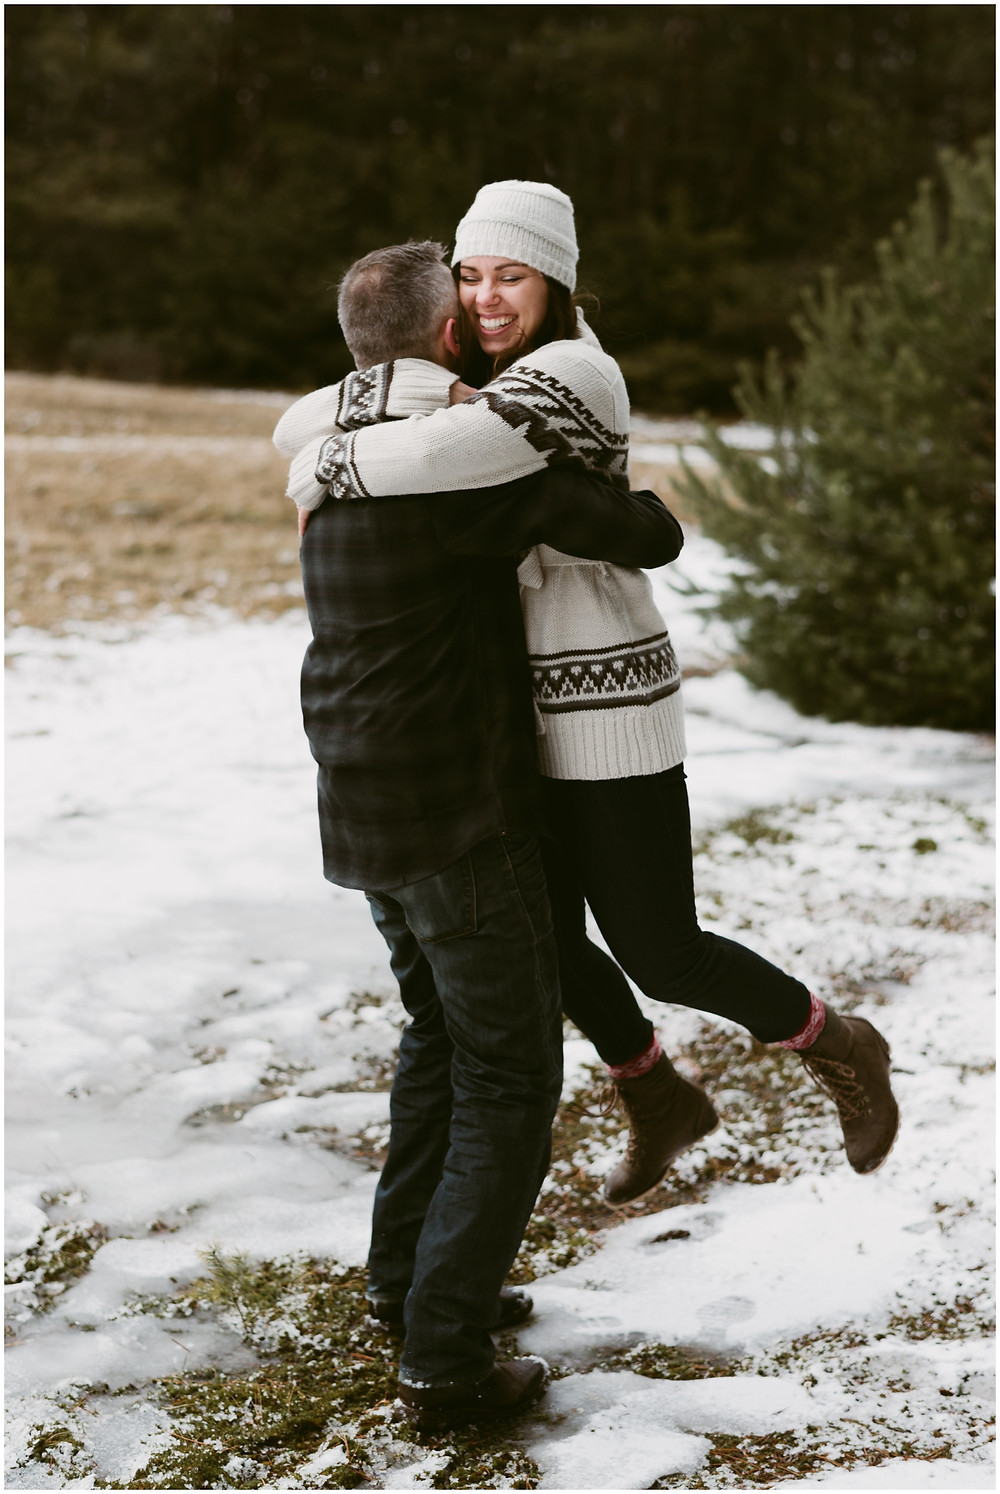 Lake Placid, NY engagement session by Mountainaire Gatherings